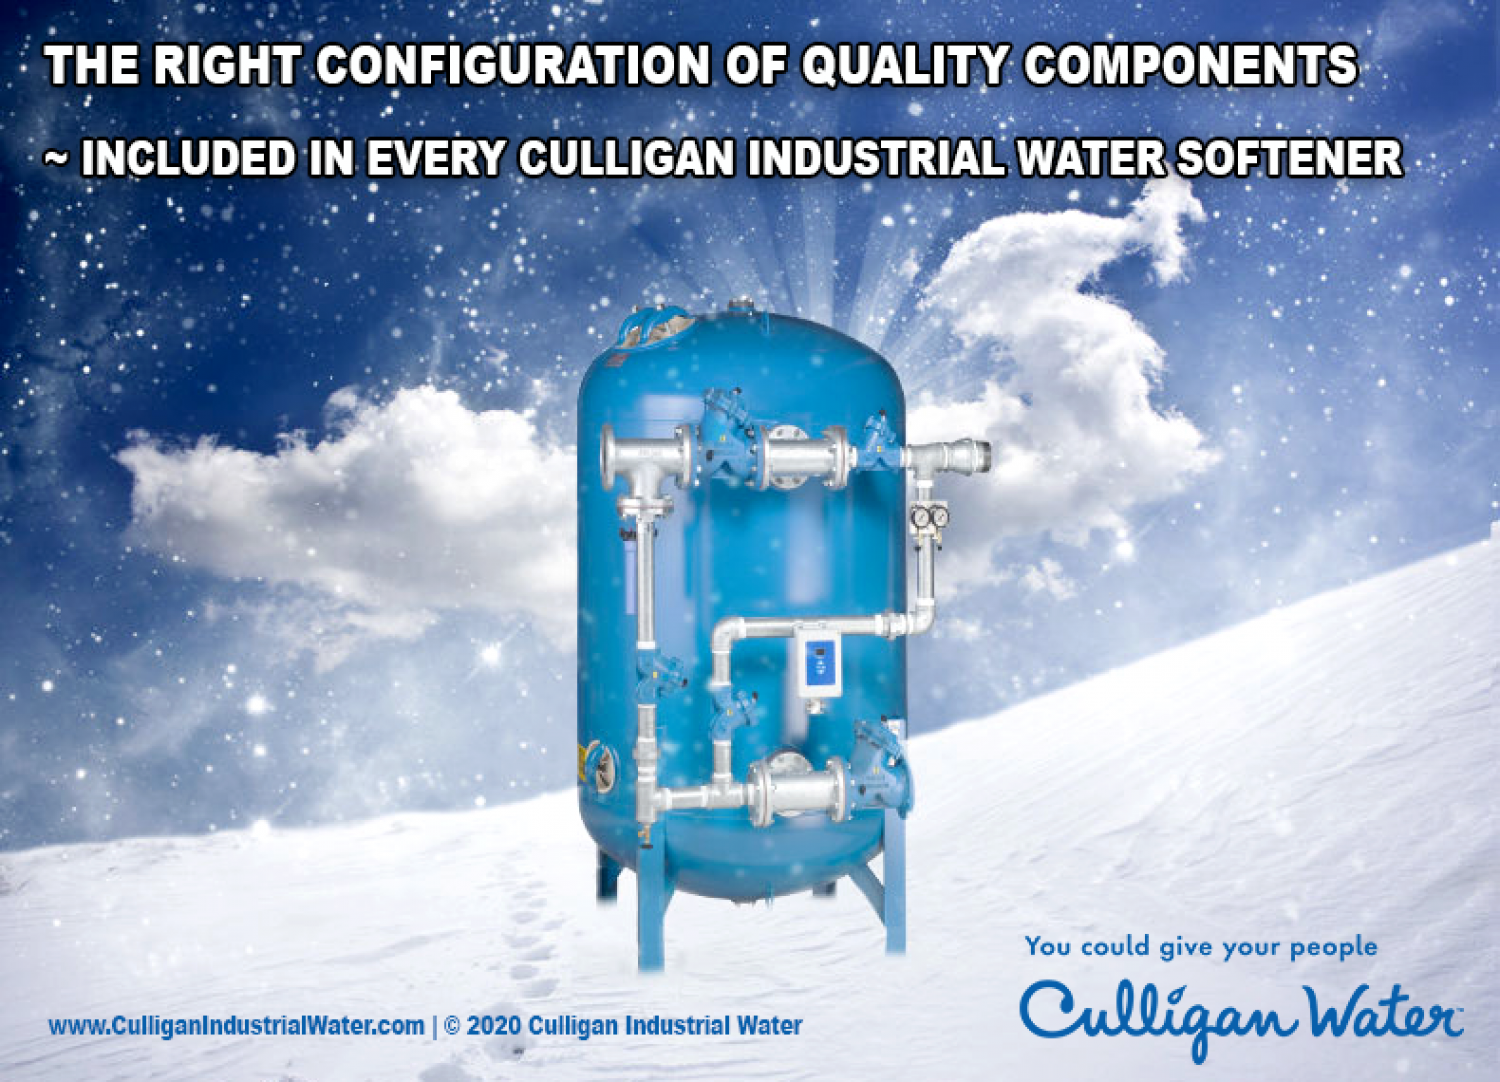 Culligan industrial water softener Infographic